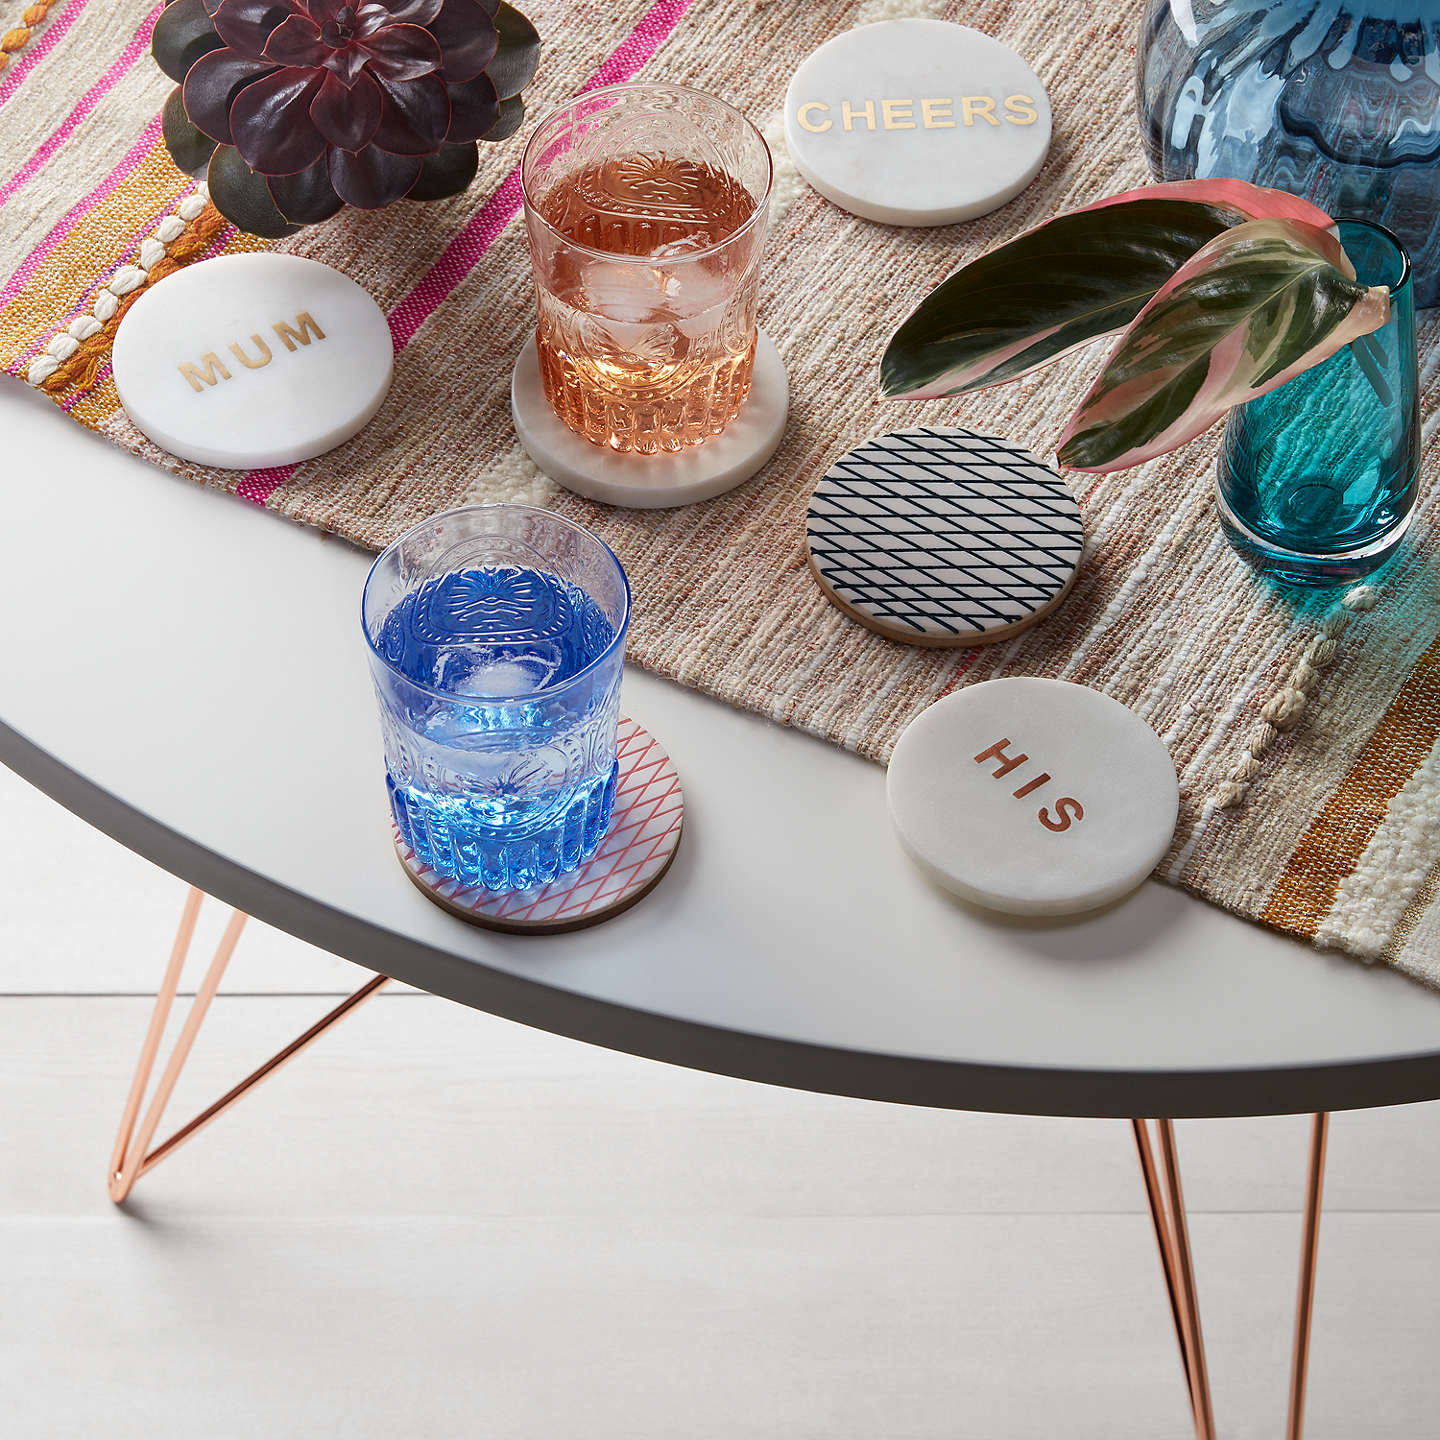 BuyJohn Lewis 'His' Marble Coaster Online at johnlewis.com